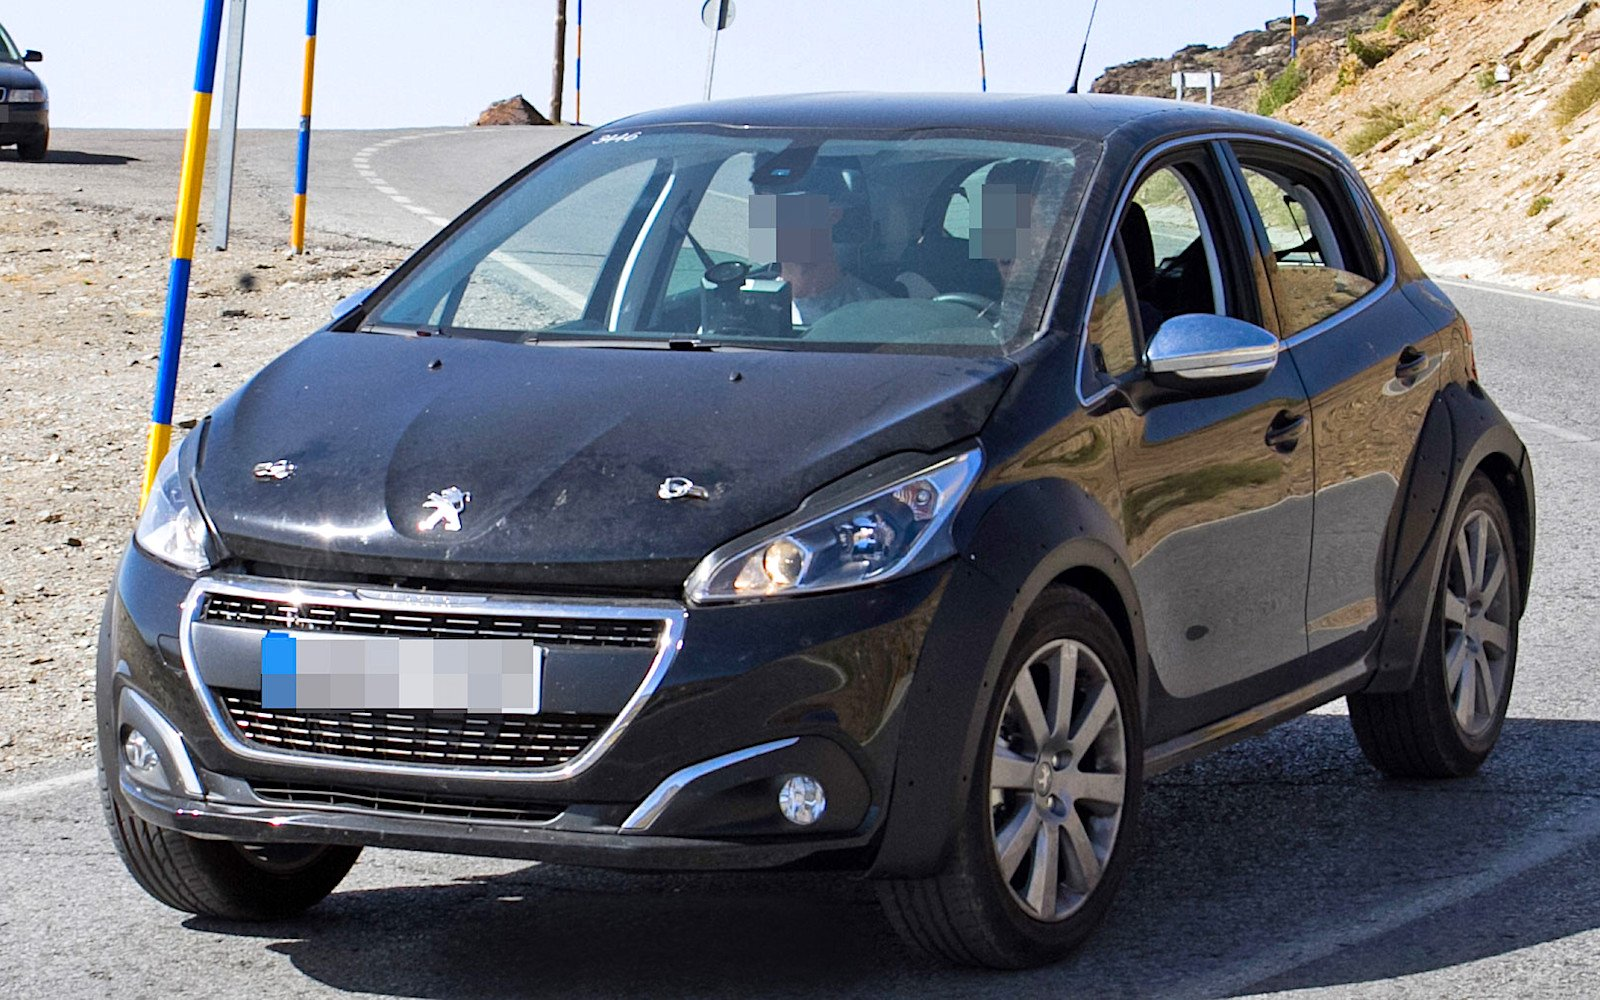 xPeugeot-1008-1.jpg.pagespeed.ic.EY58LqG7Ps